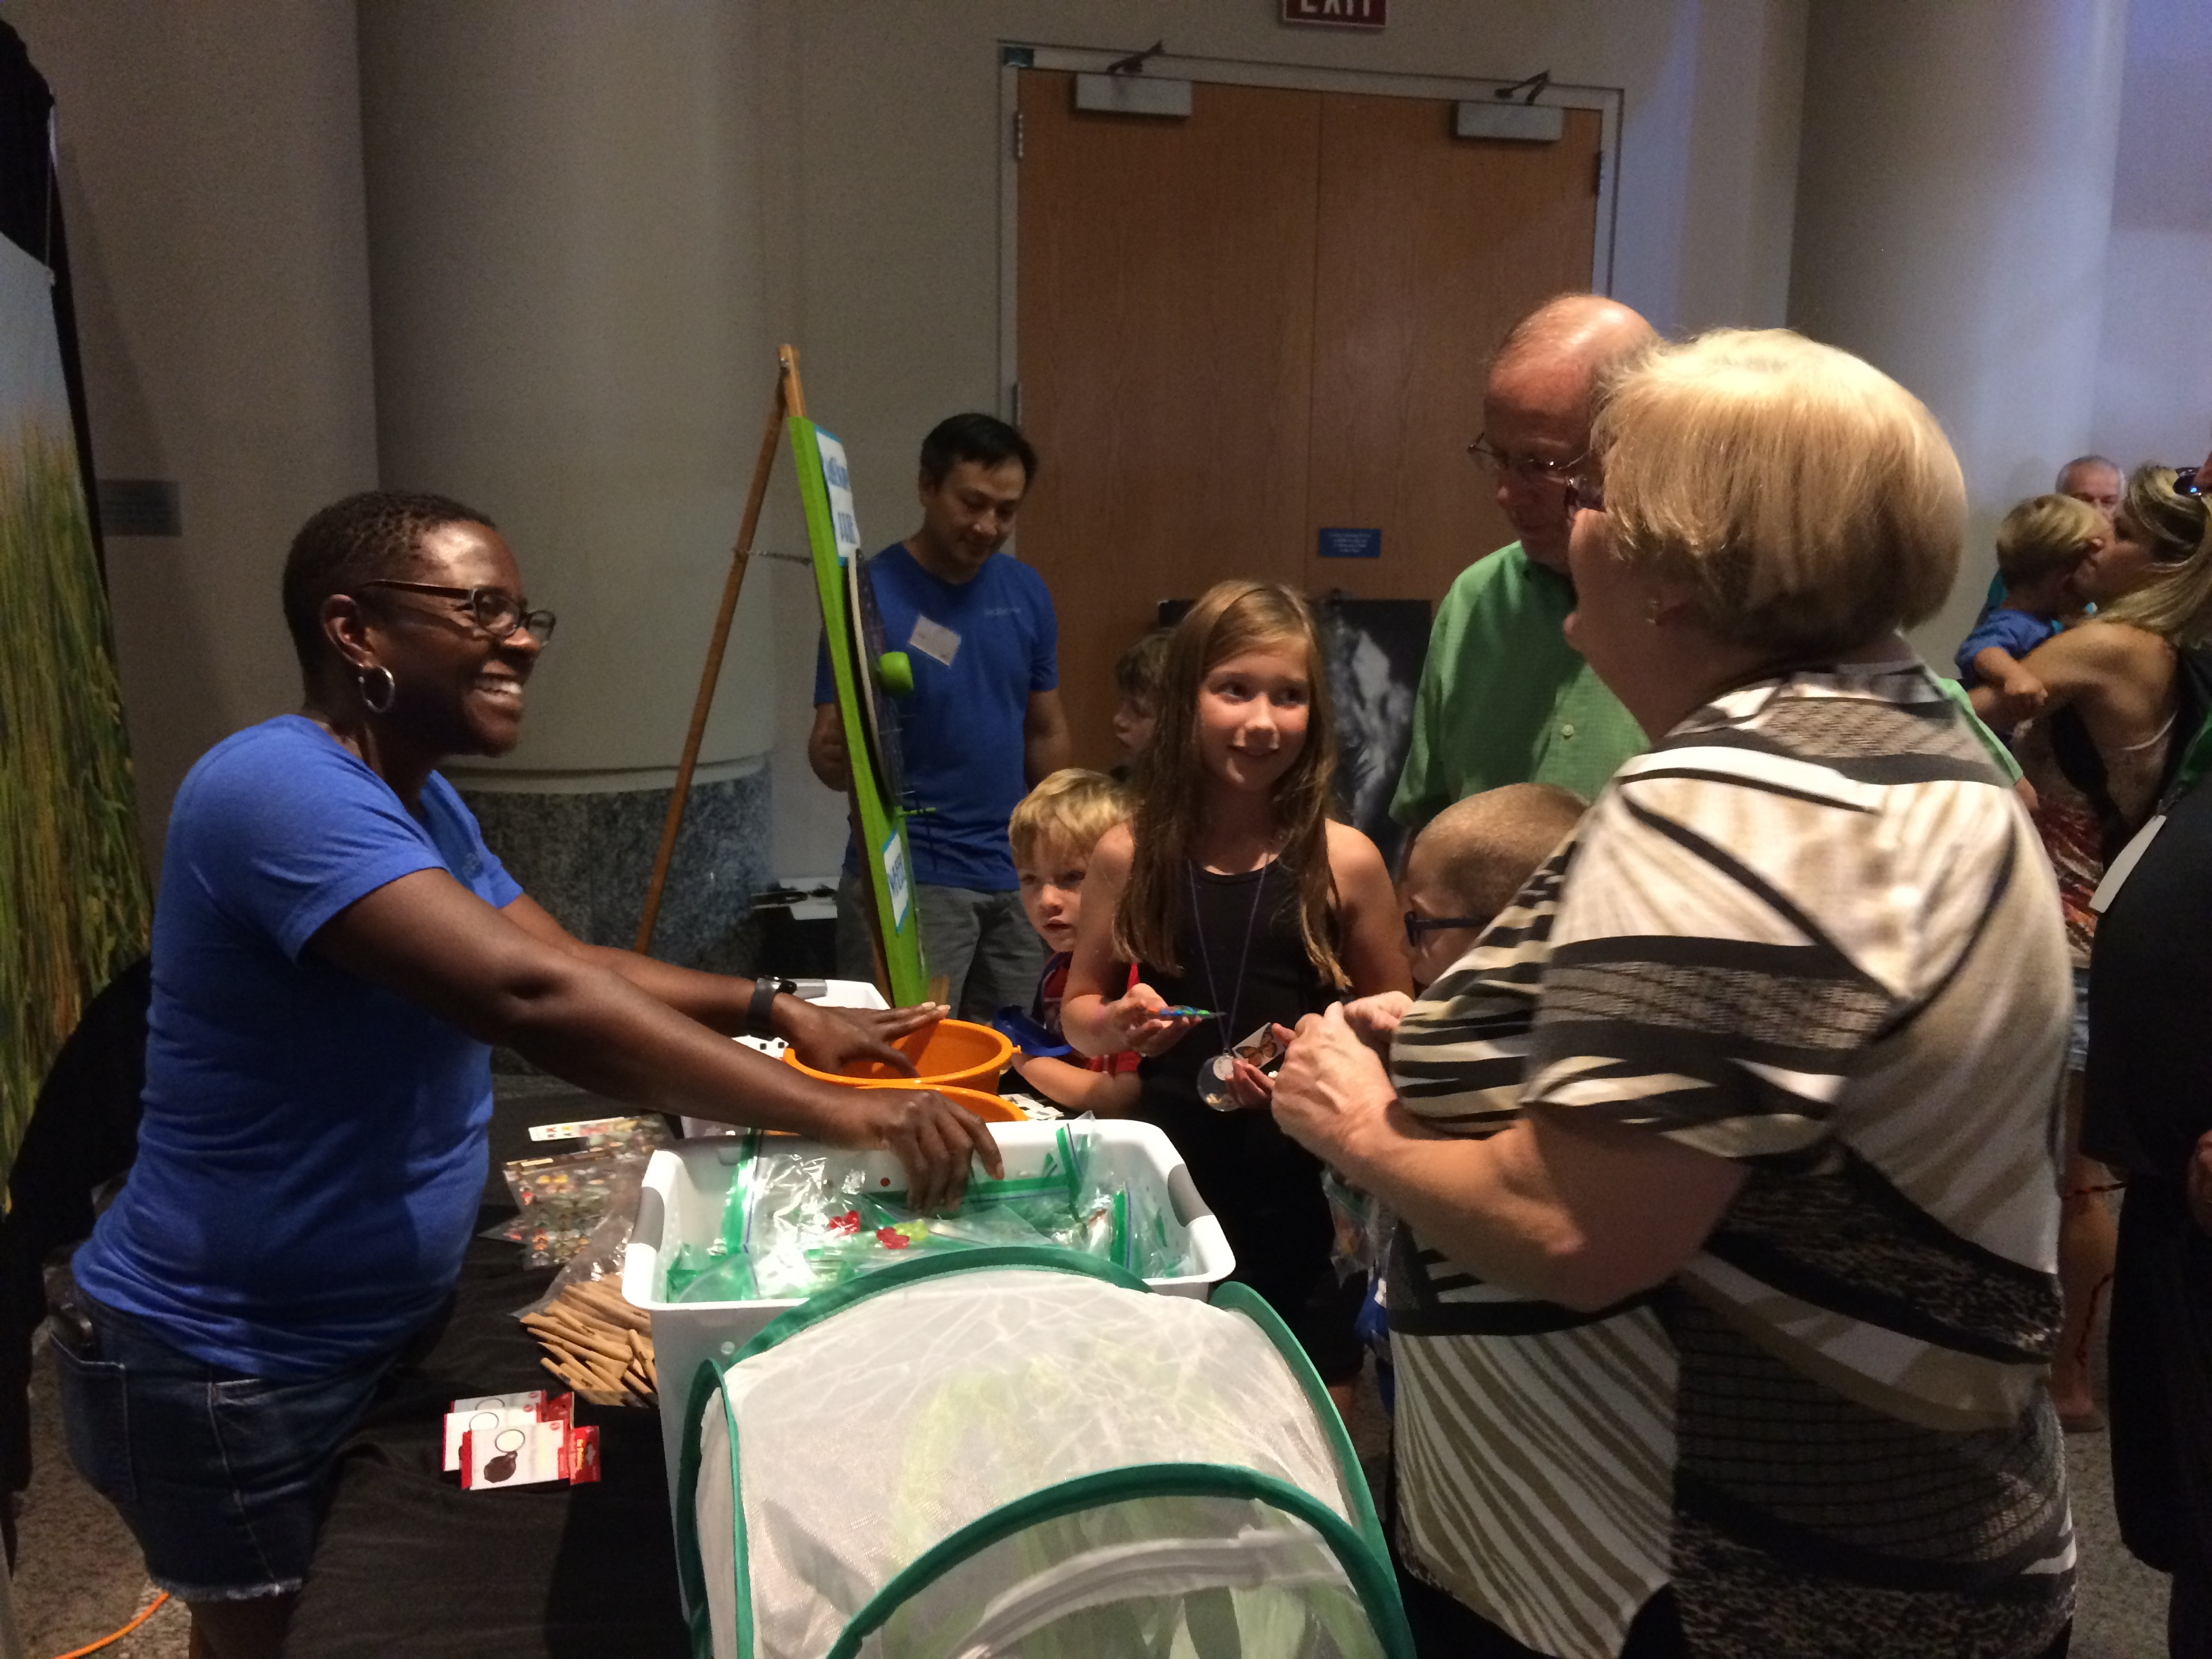 Sinnika talks with visitors to the AgBiome booth at the 2017 BugFest event at the Museum of Natural Sciences in Raleigh, NC.